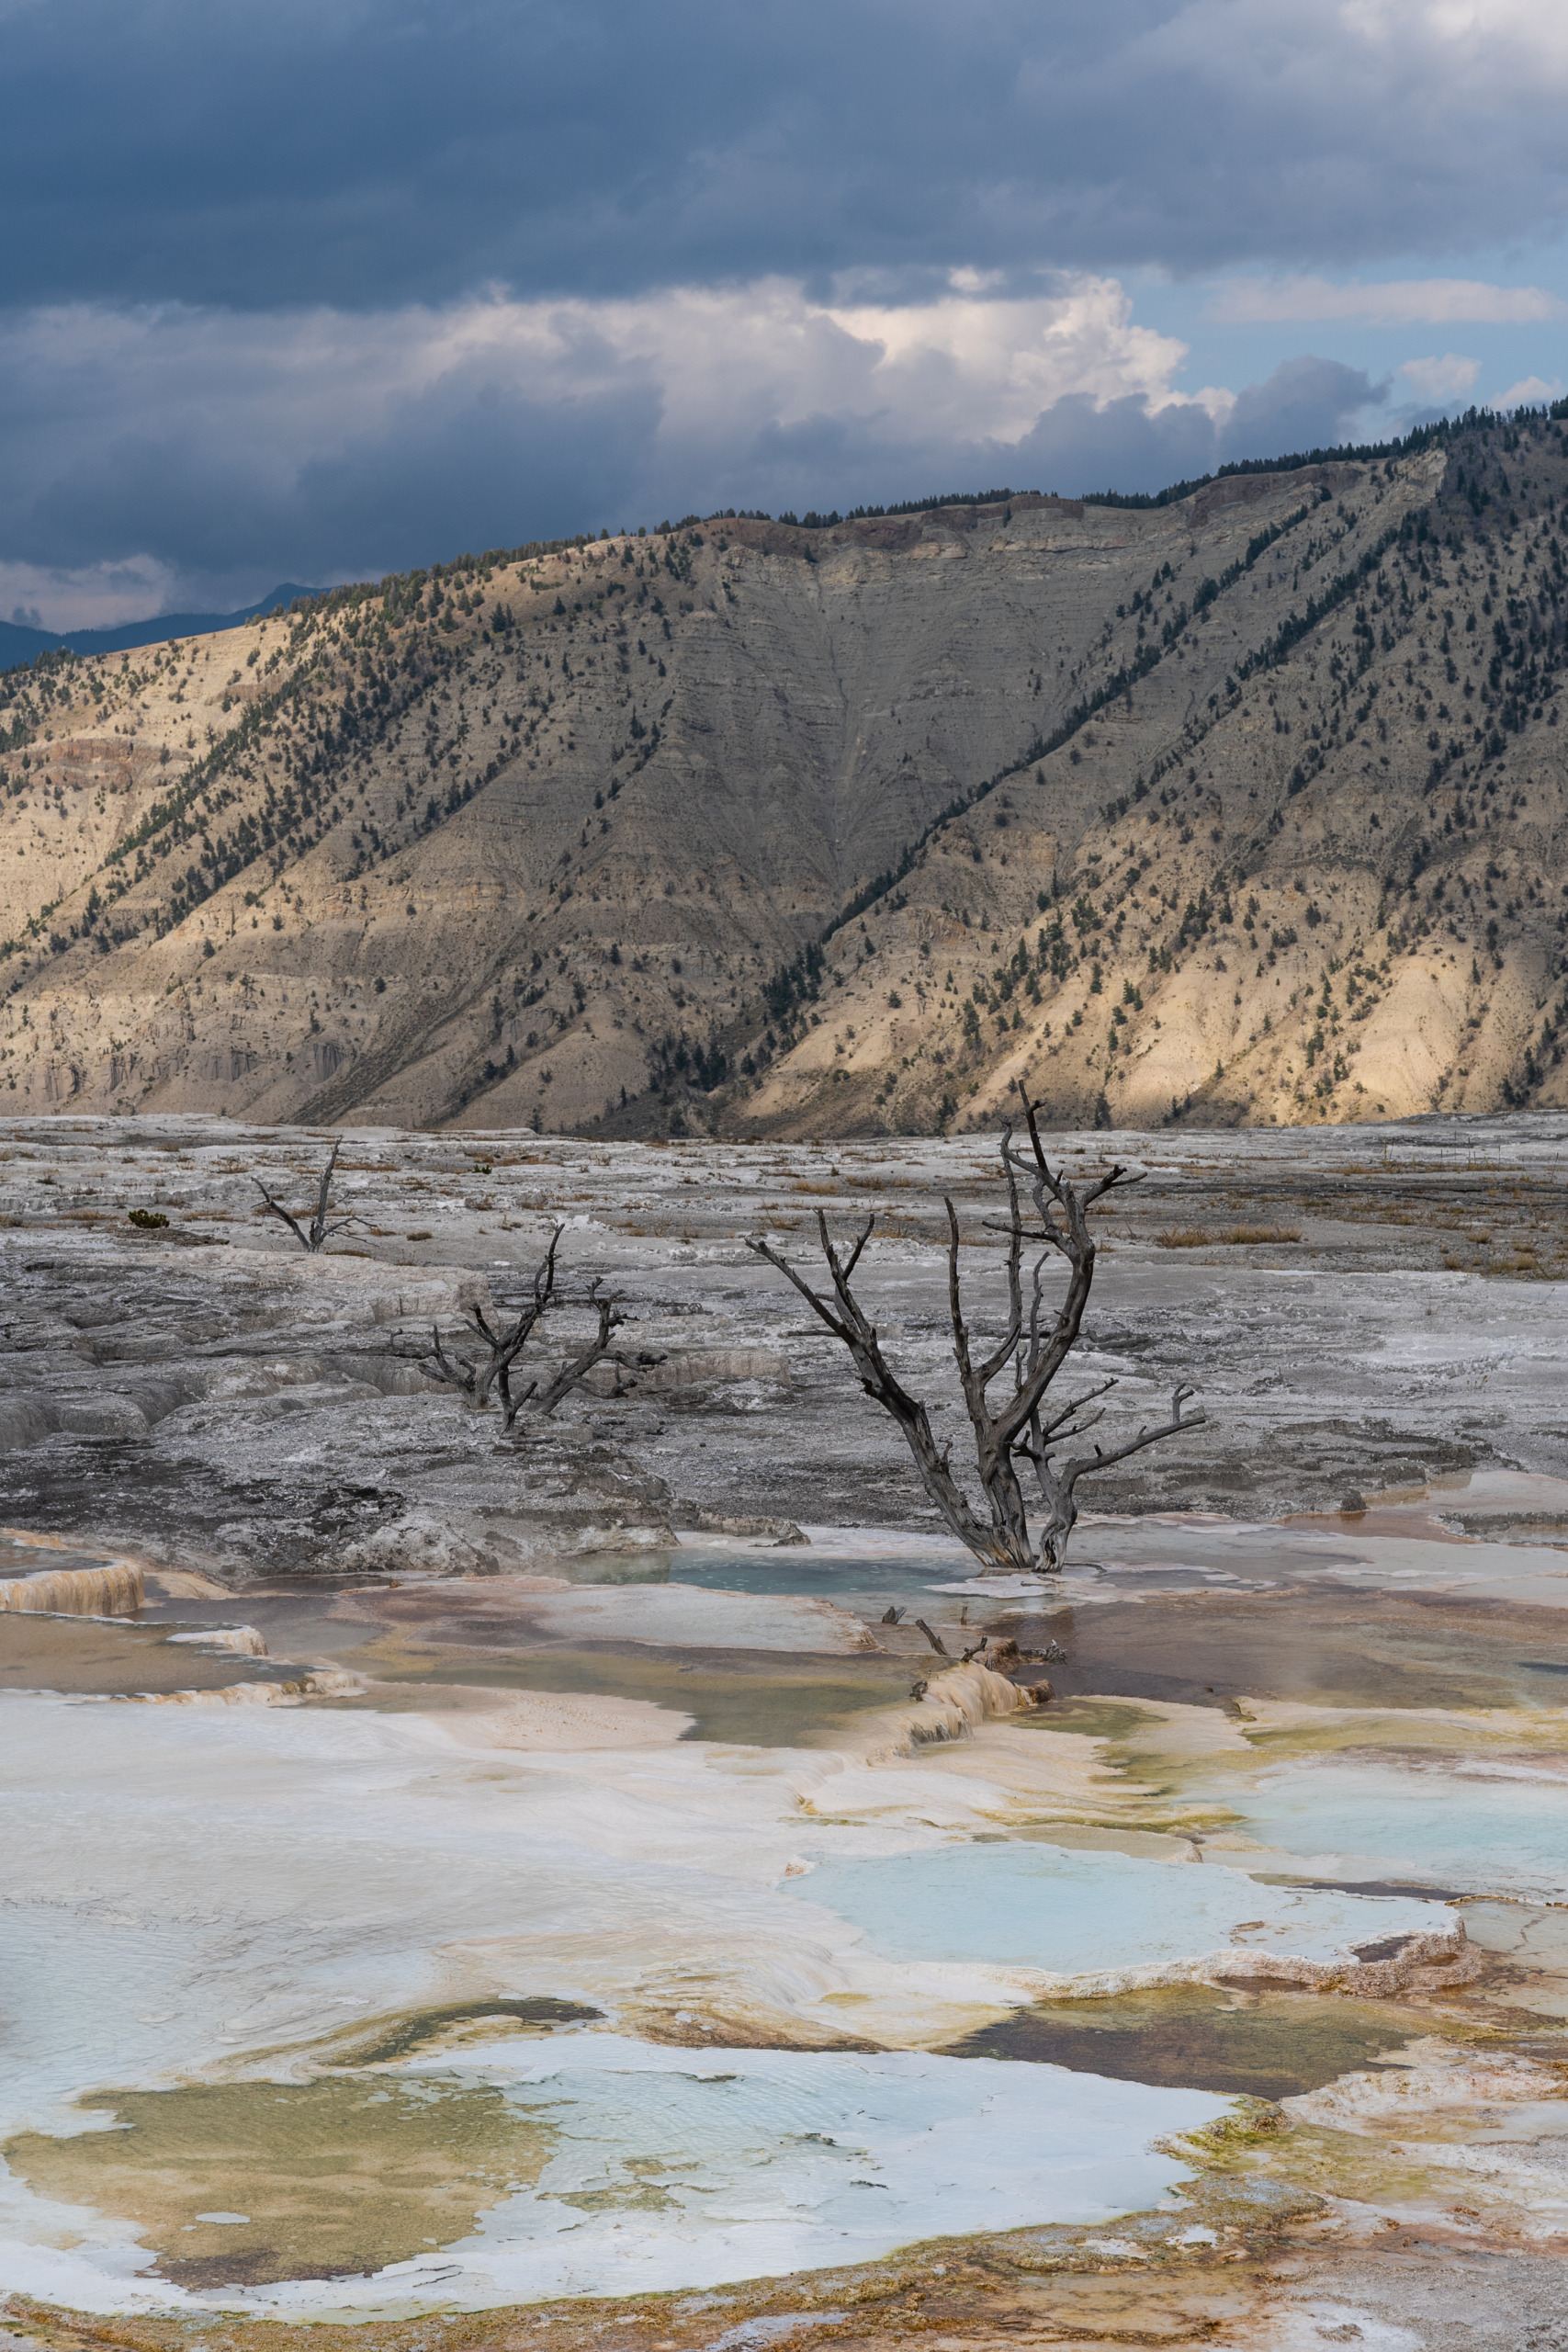 Mammoth Hot Springs Area, Yellowstone National Park, Wyoming, USA